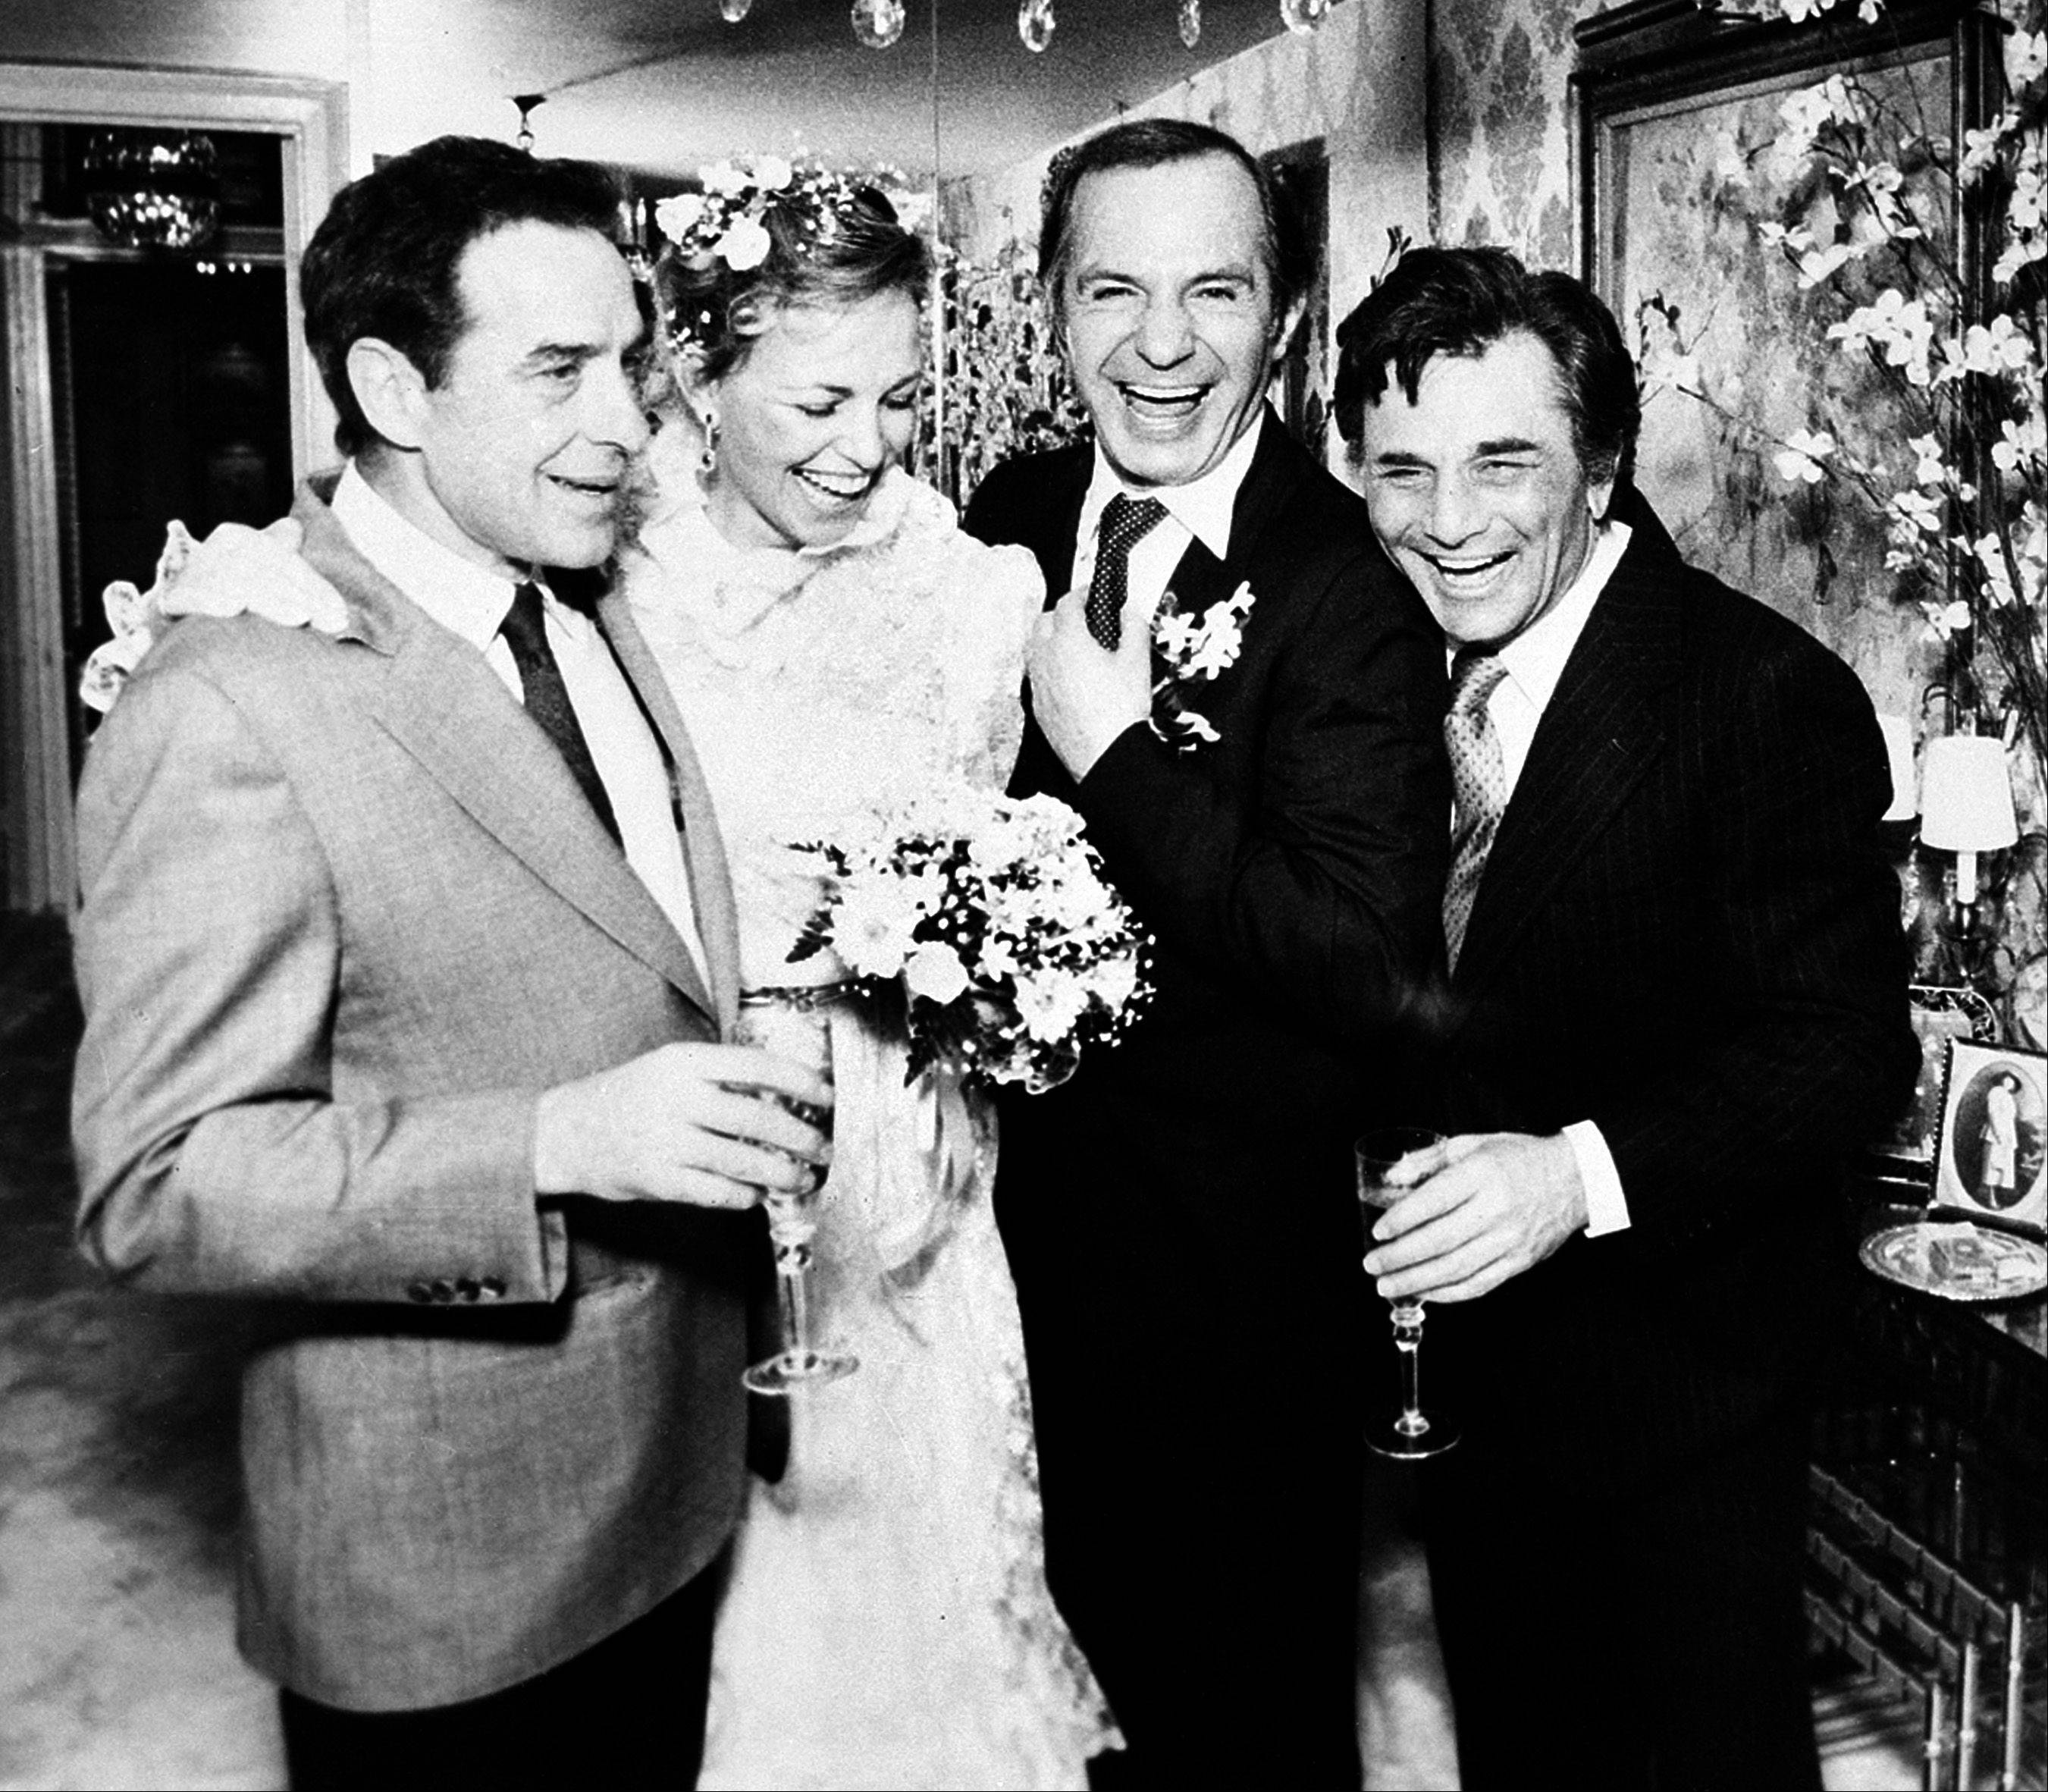 Ben Gazzara and his bride Elke Kriwert are joined by director John Cassavetes, left, and actor Peter Falk, right, after their wedding ceremony in New York, on February 26, 1982..